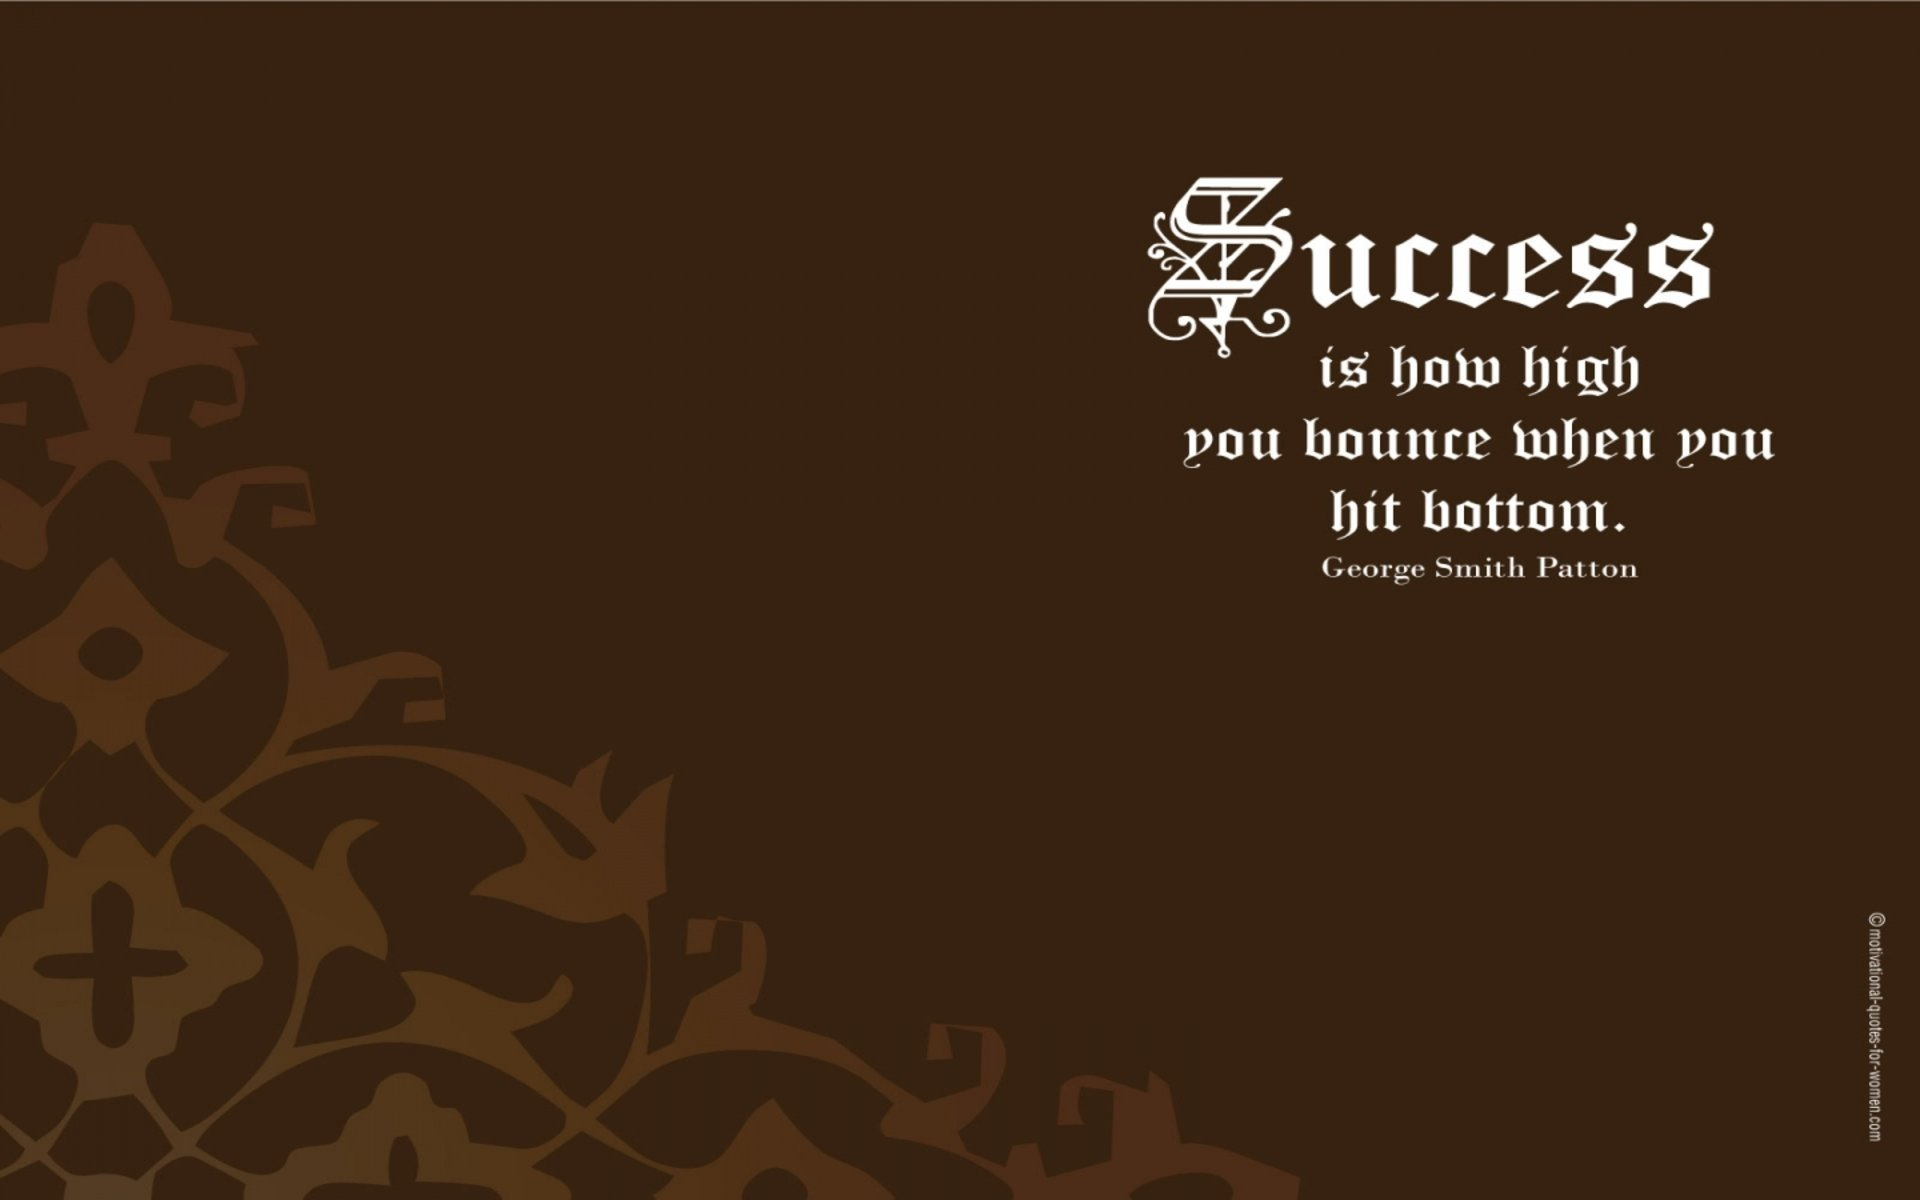 Success Quotes Hd Wallpapers 1080p Wall Paper Fot Image Collections Wallpaper And Free Download